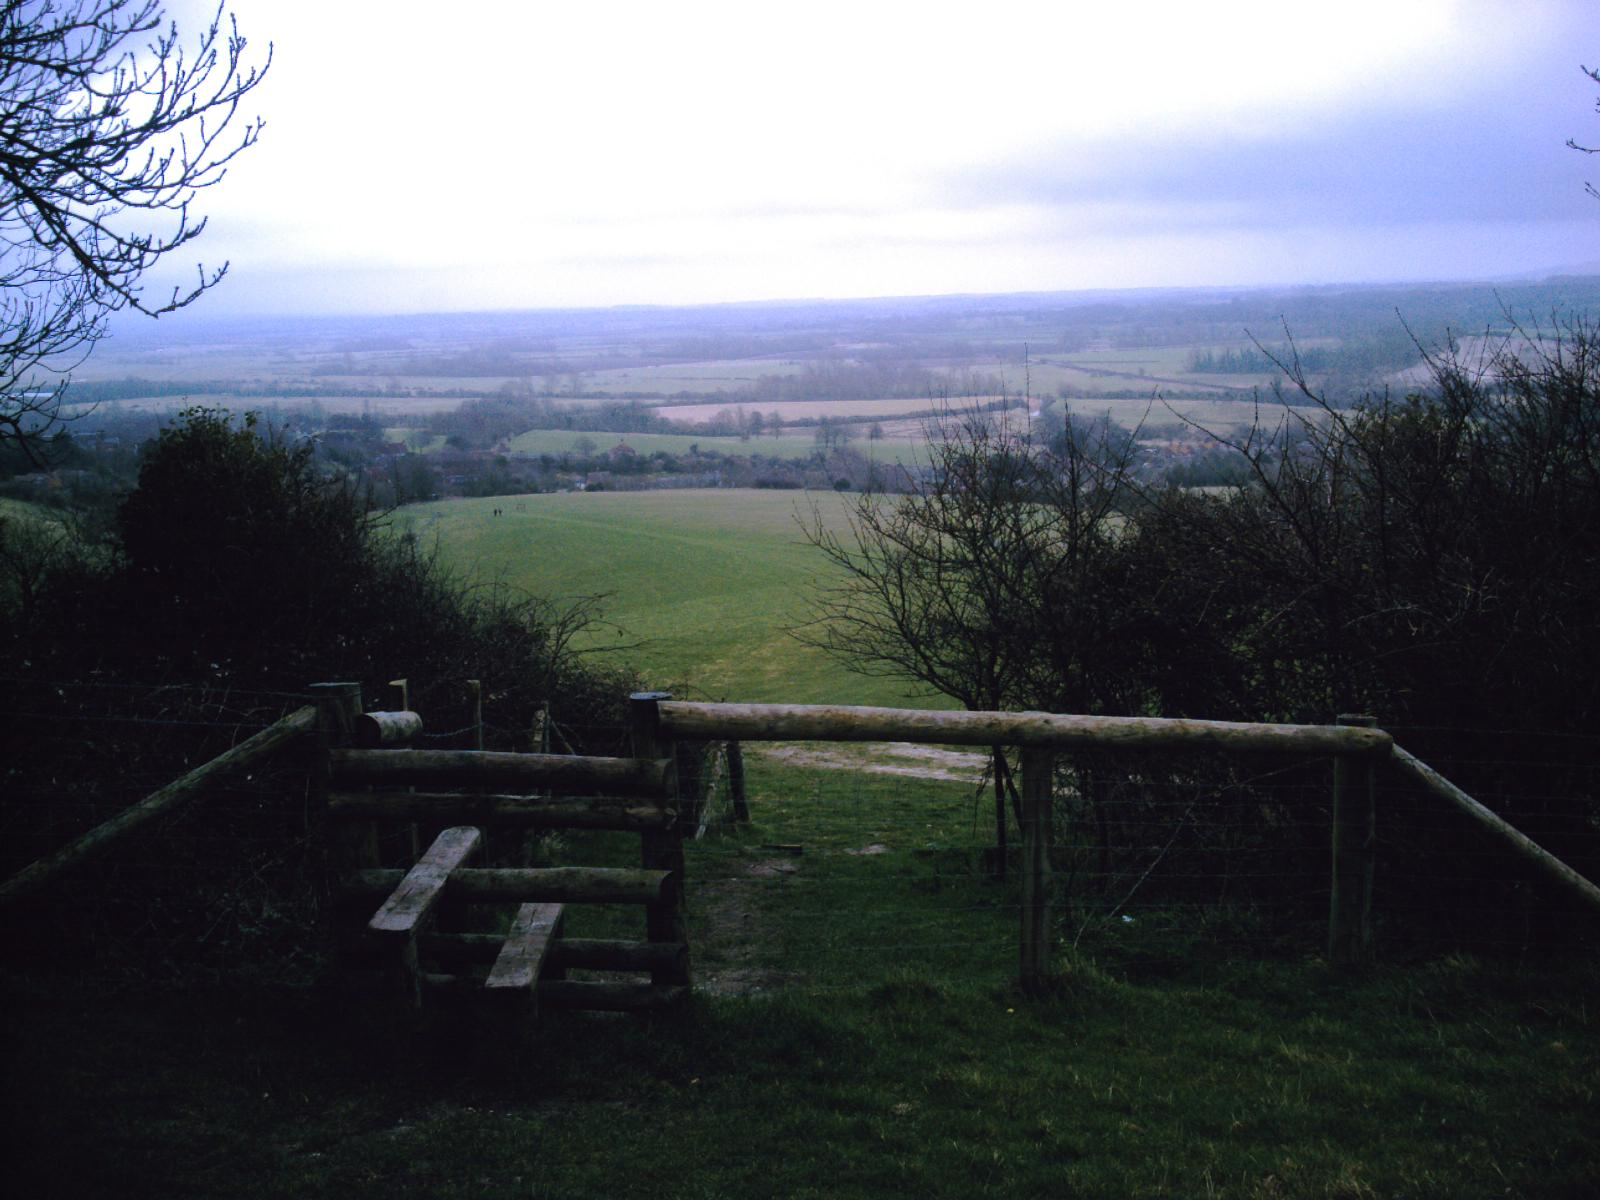 Book 2 Walk 25 Lewes via West Firle Circular View from above Glynde (just below Mount Caburn). D.Allen VIVITAR 5199mp